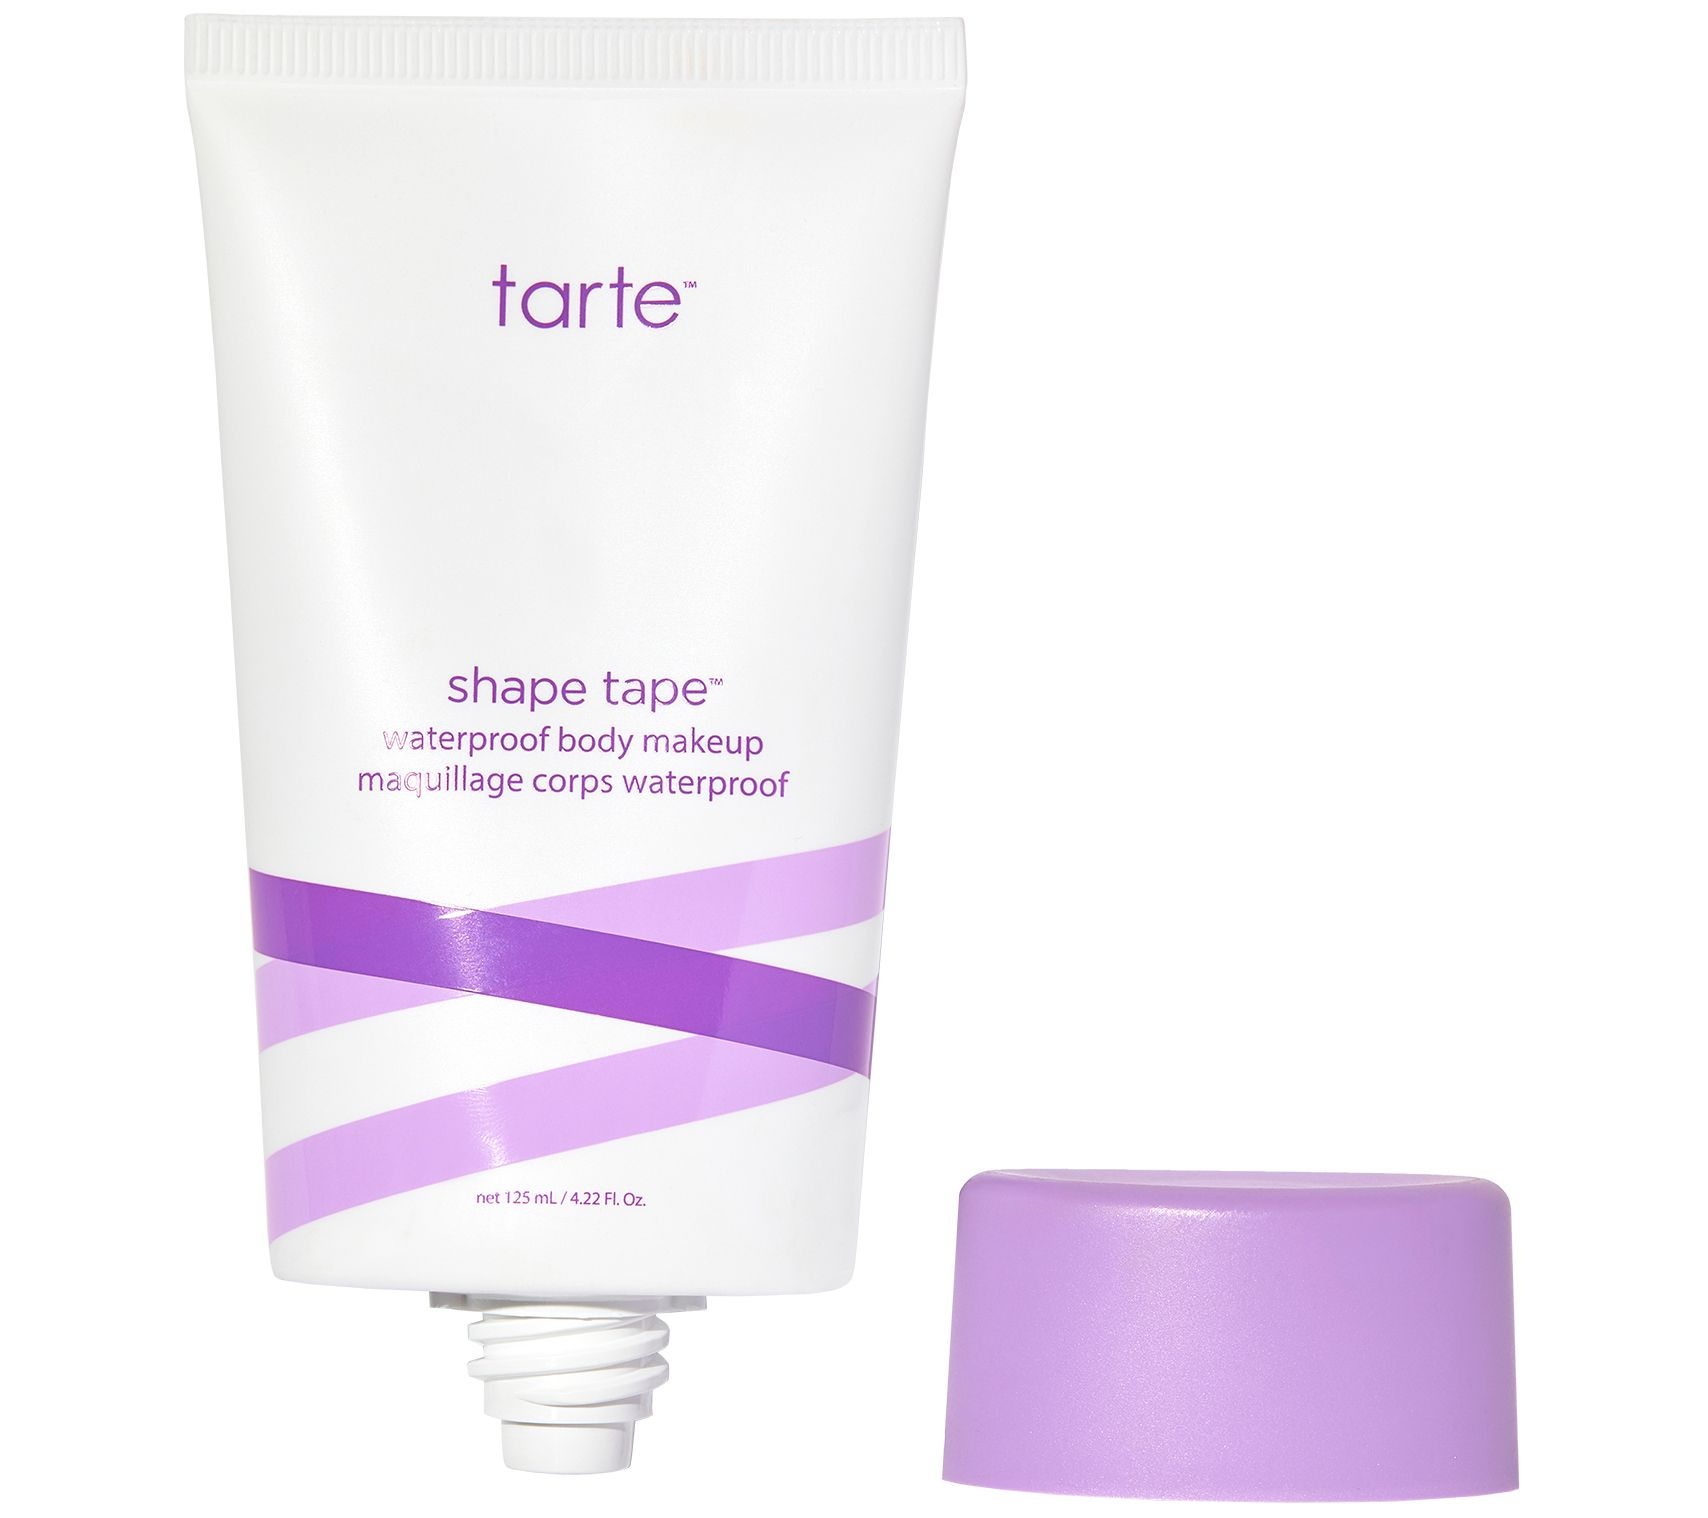 Tarte Shape Tape Waterproof Body Makeup